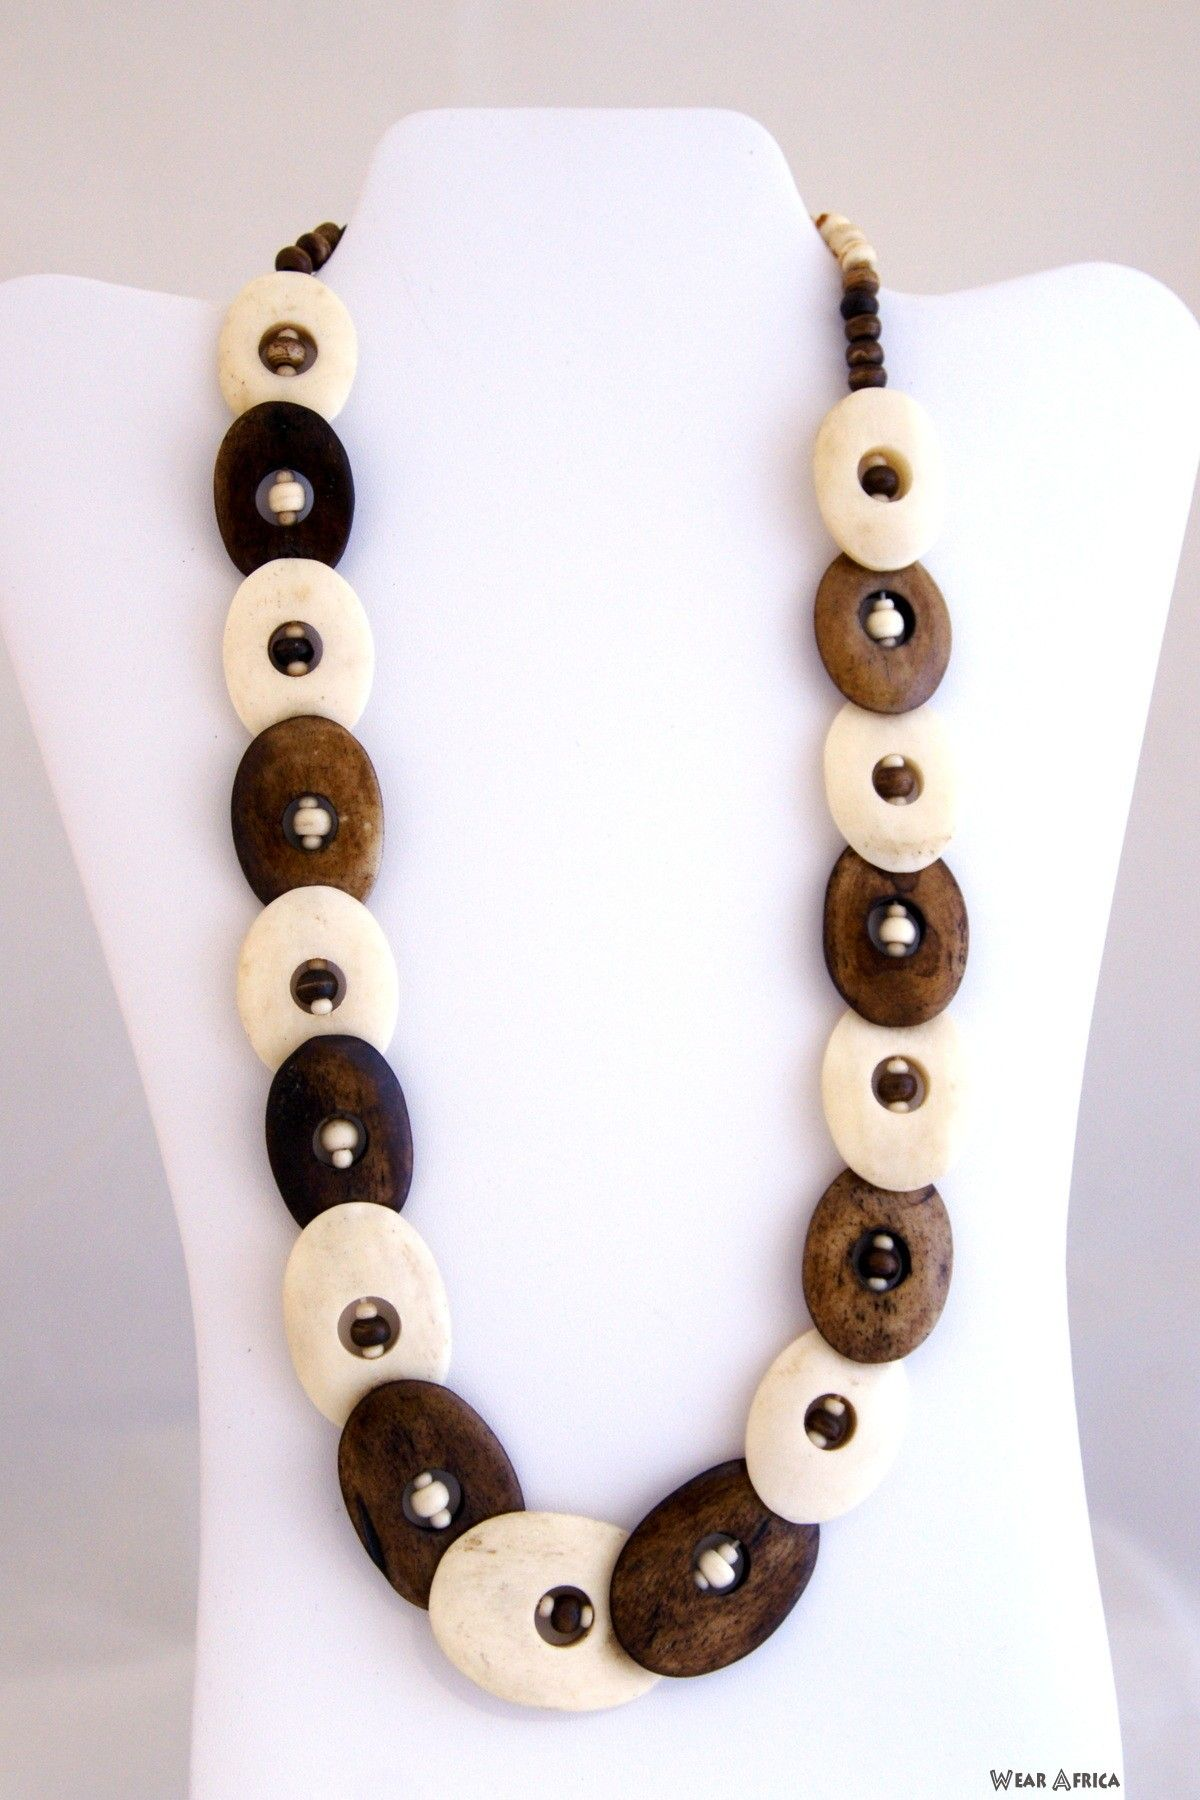 B&W Eyed Oval Chain Chain, African jewelry, Beaded necklace